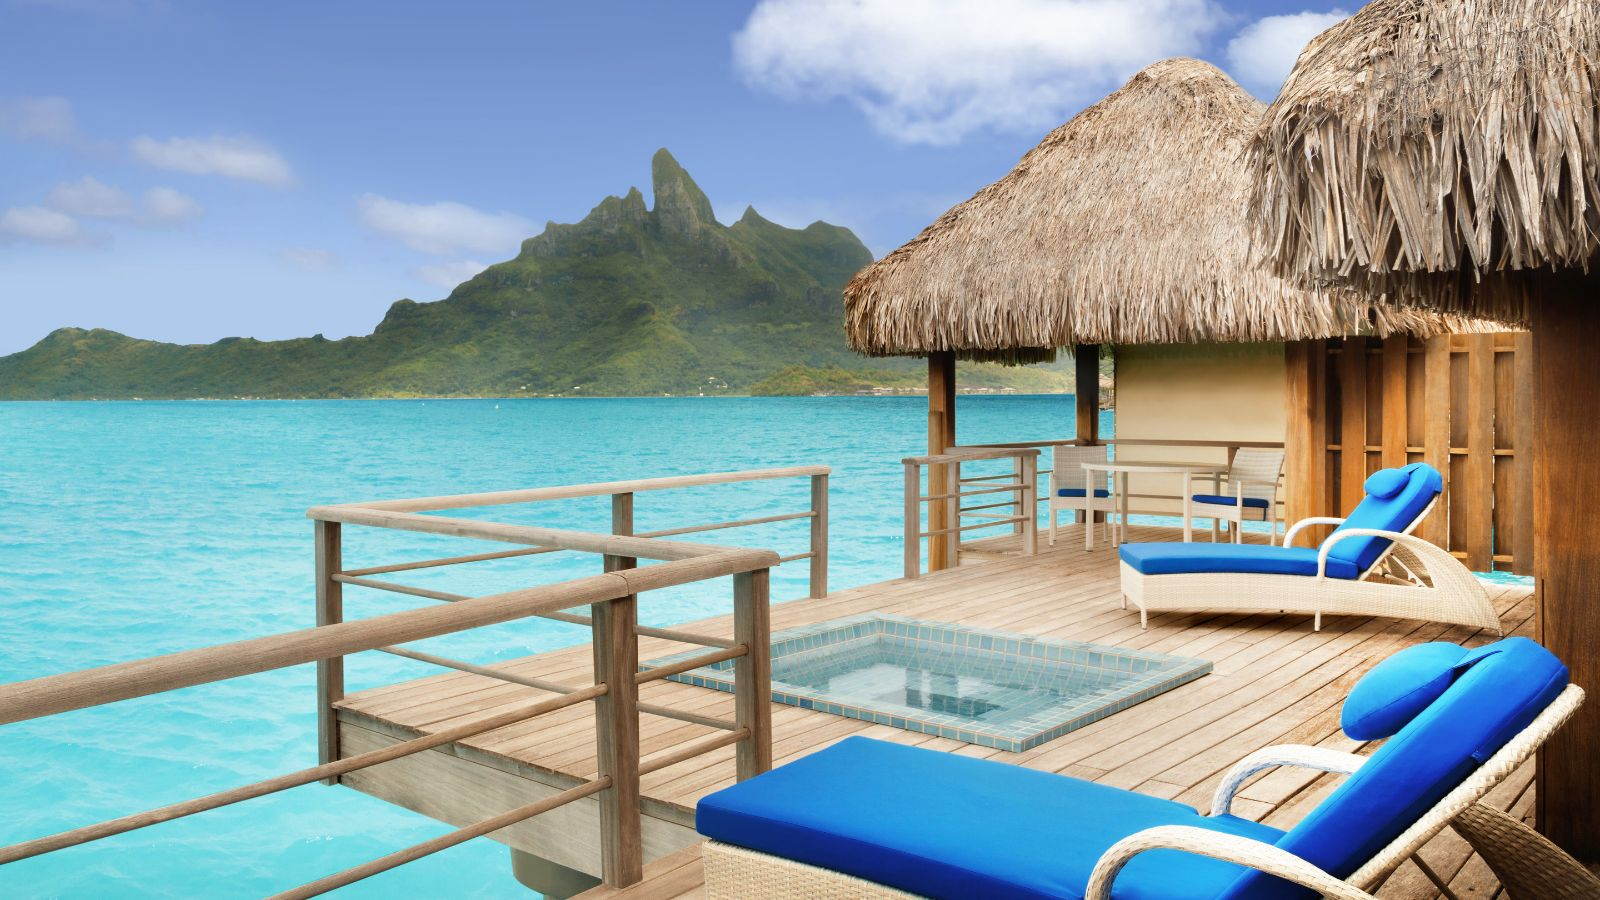 Starwood Suites The St Regis Bora Bora Resort